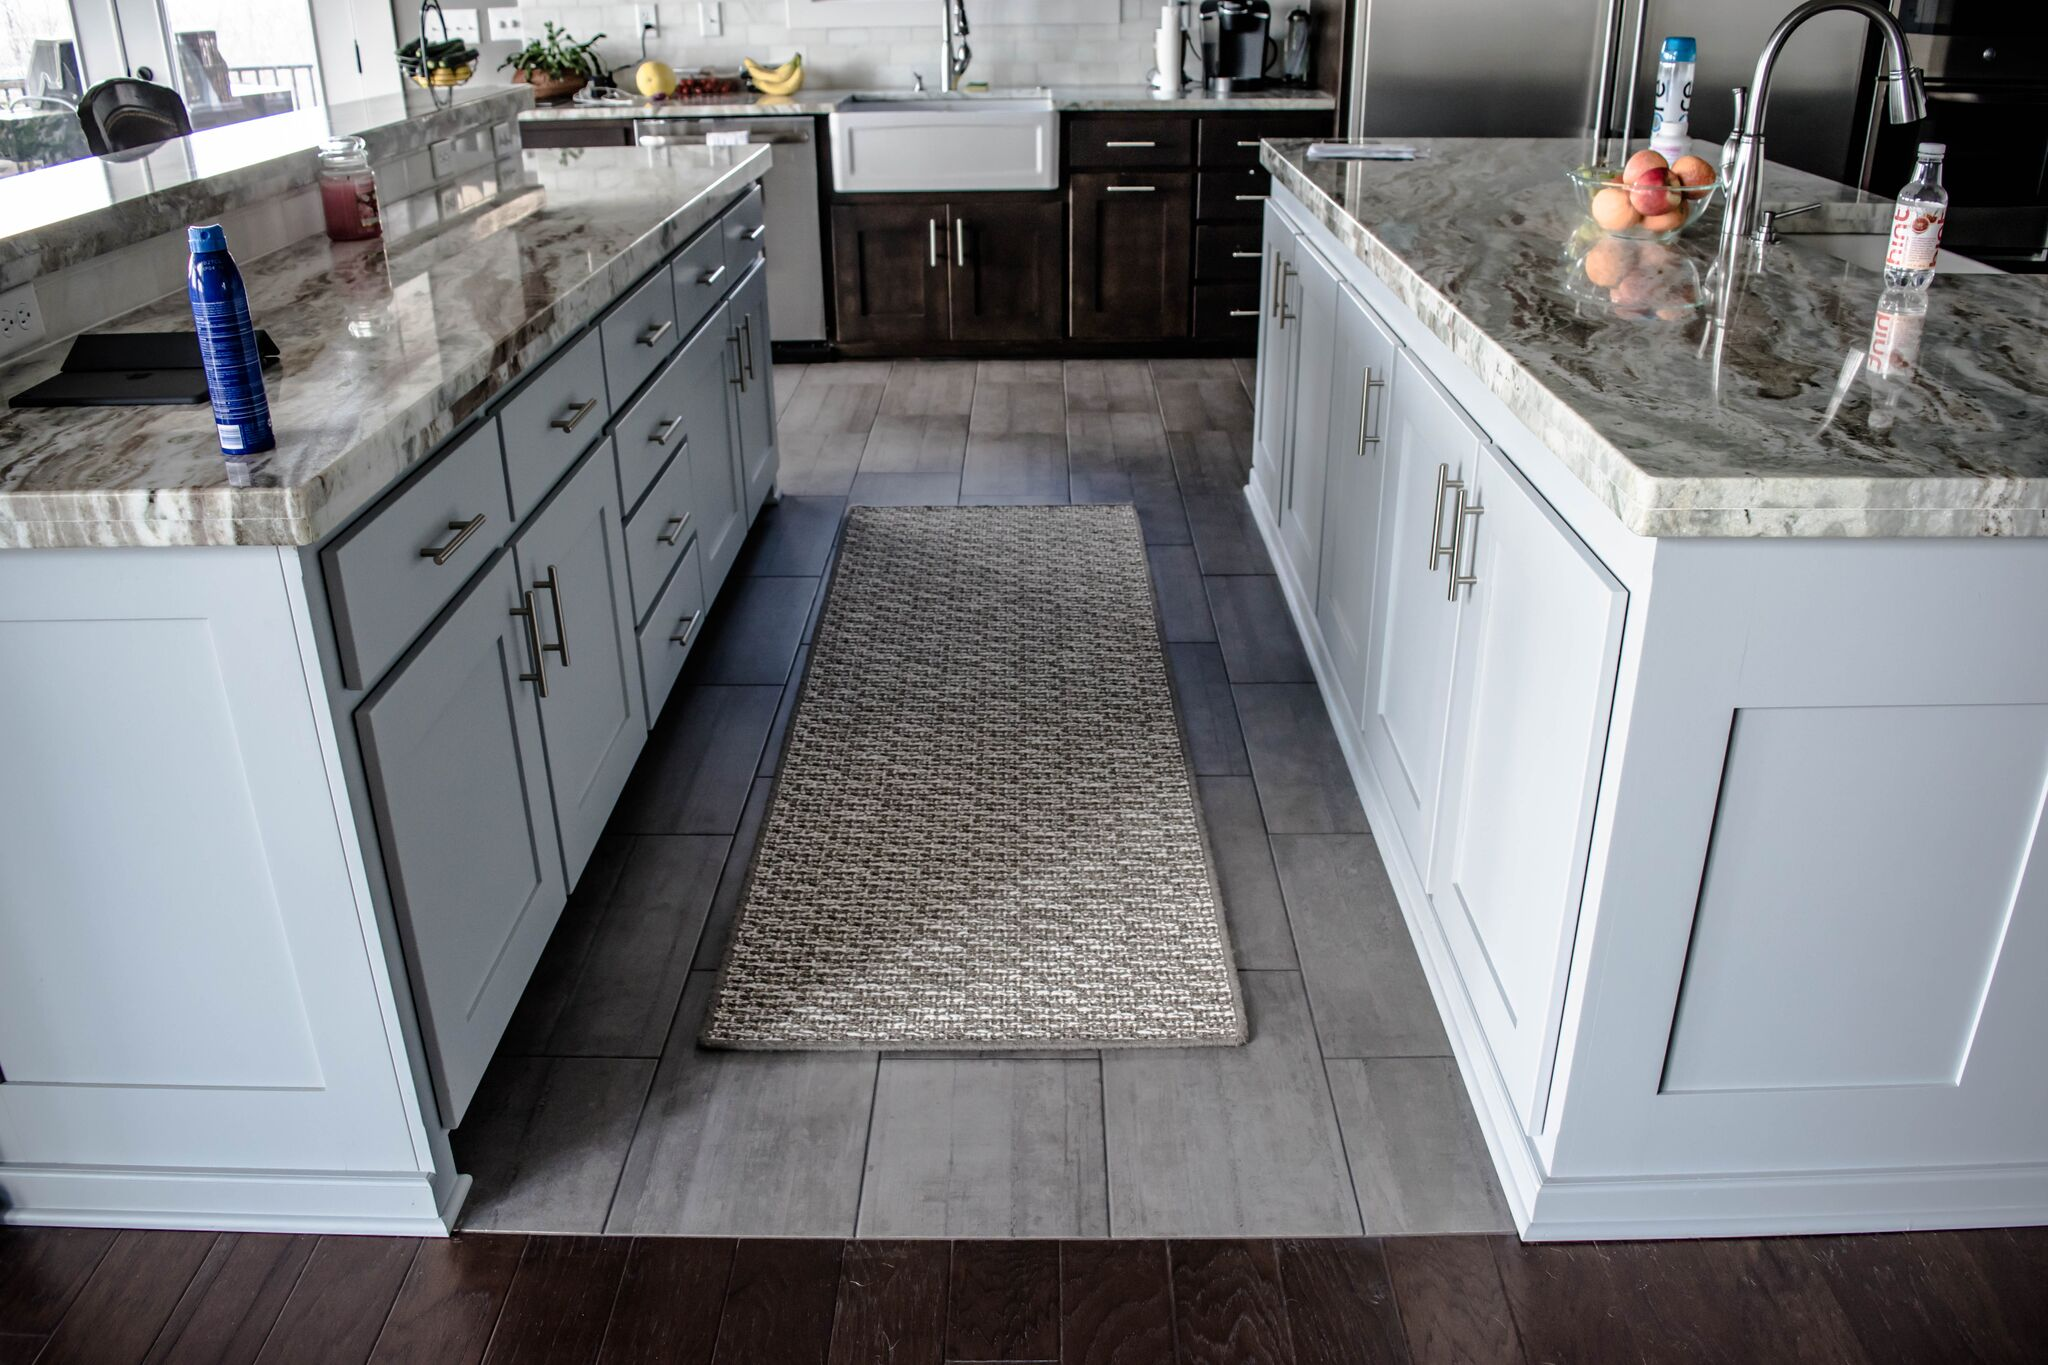 Kansas City Kitchen Flooring: Which Should You Choose?